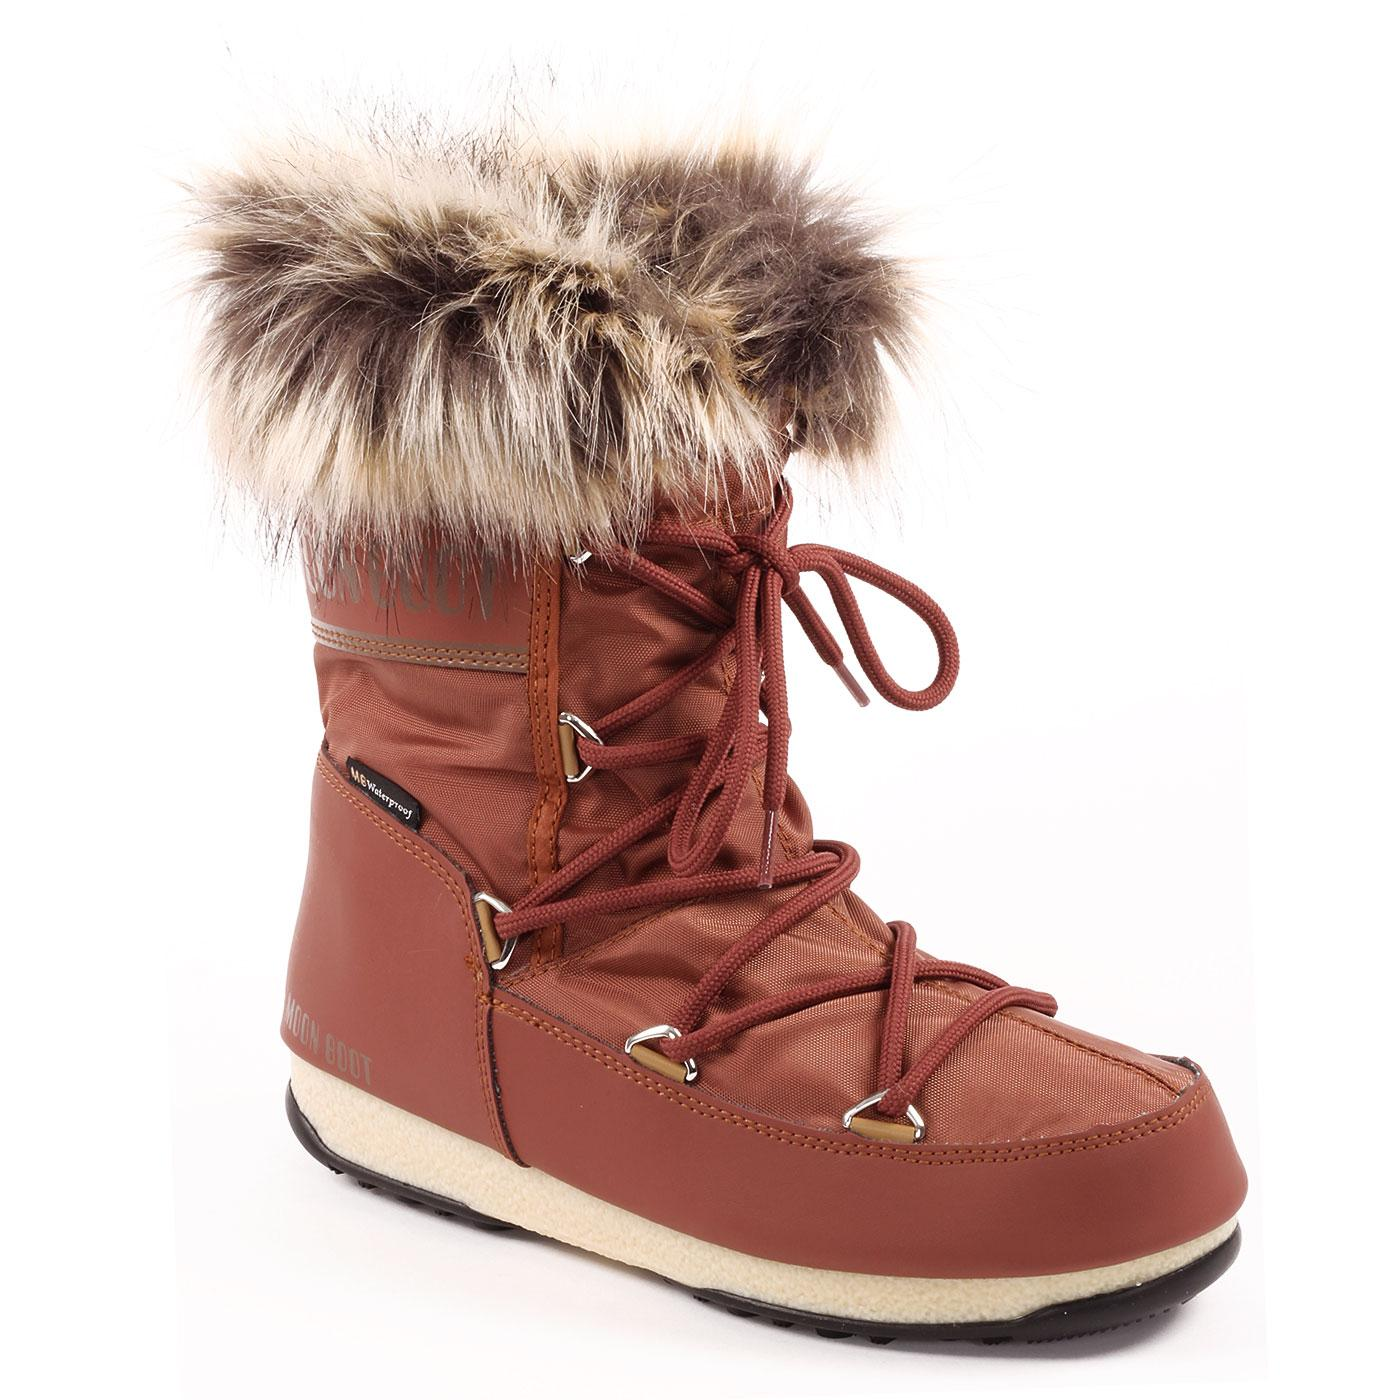 MOON BOOT Monaco Low Retro 70s Winter Boots R